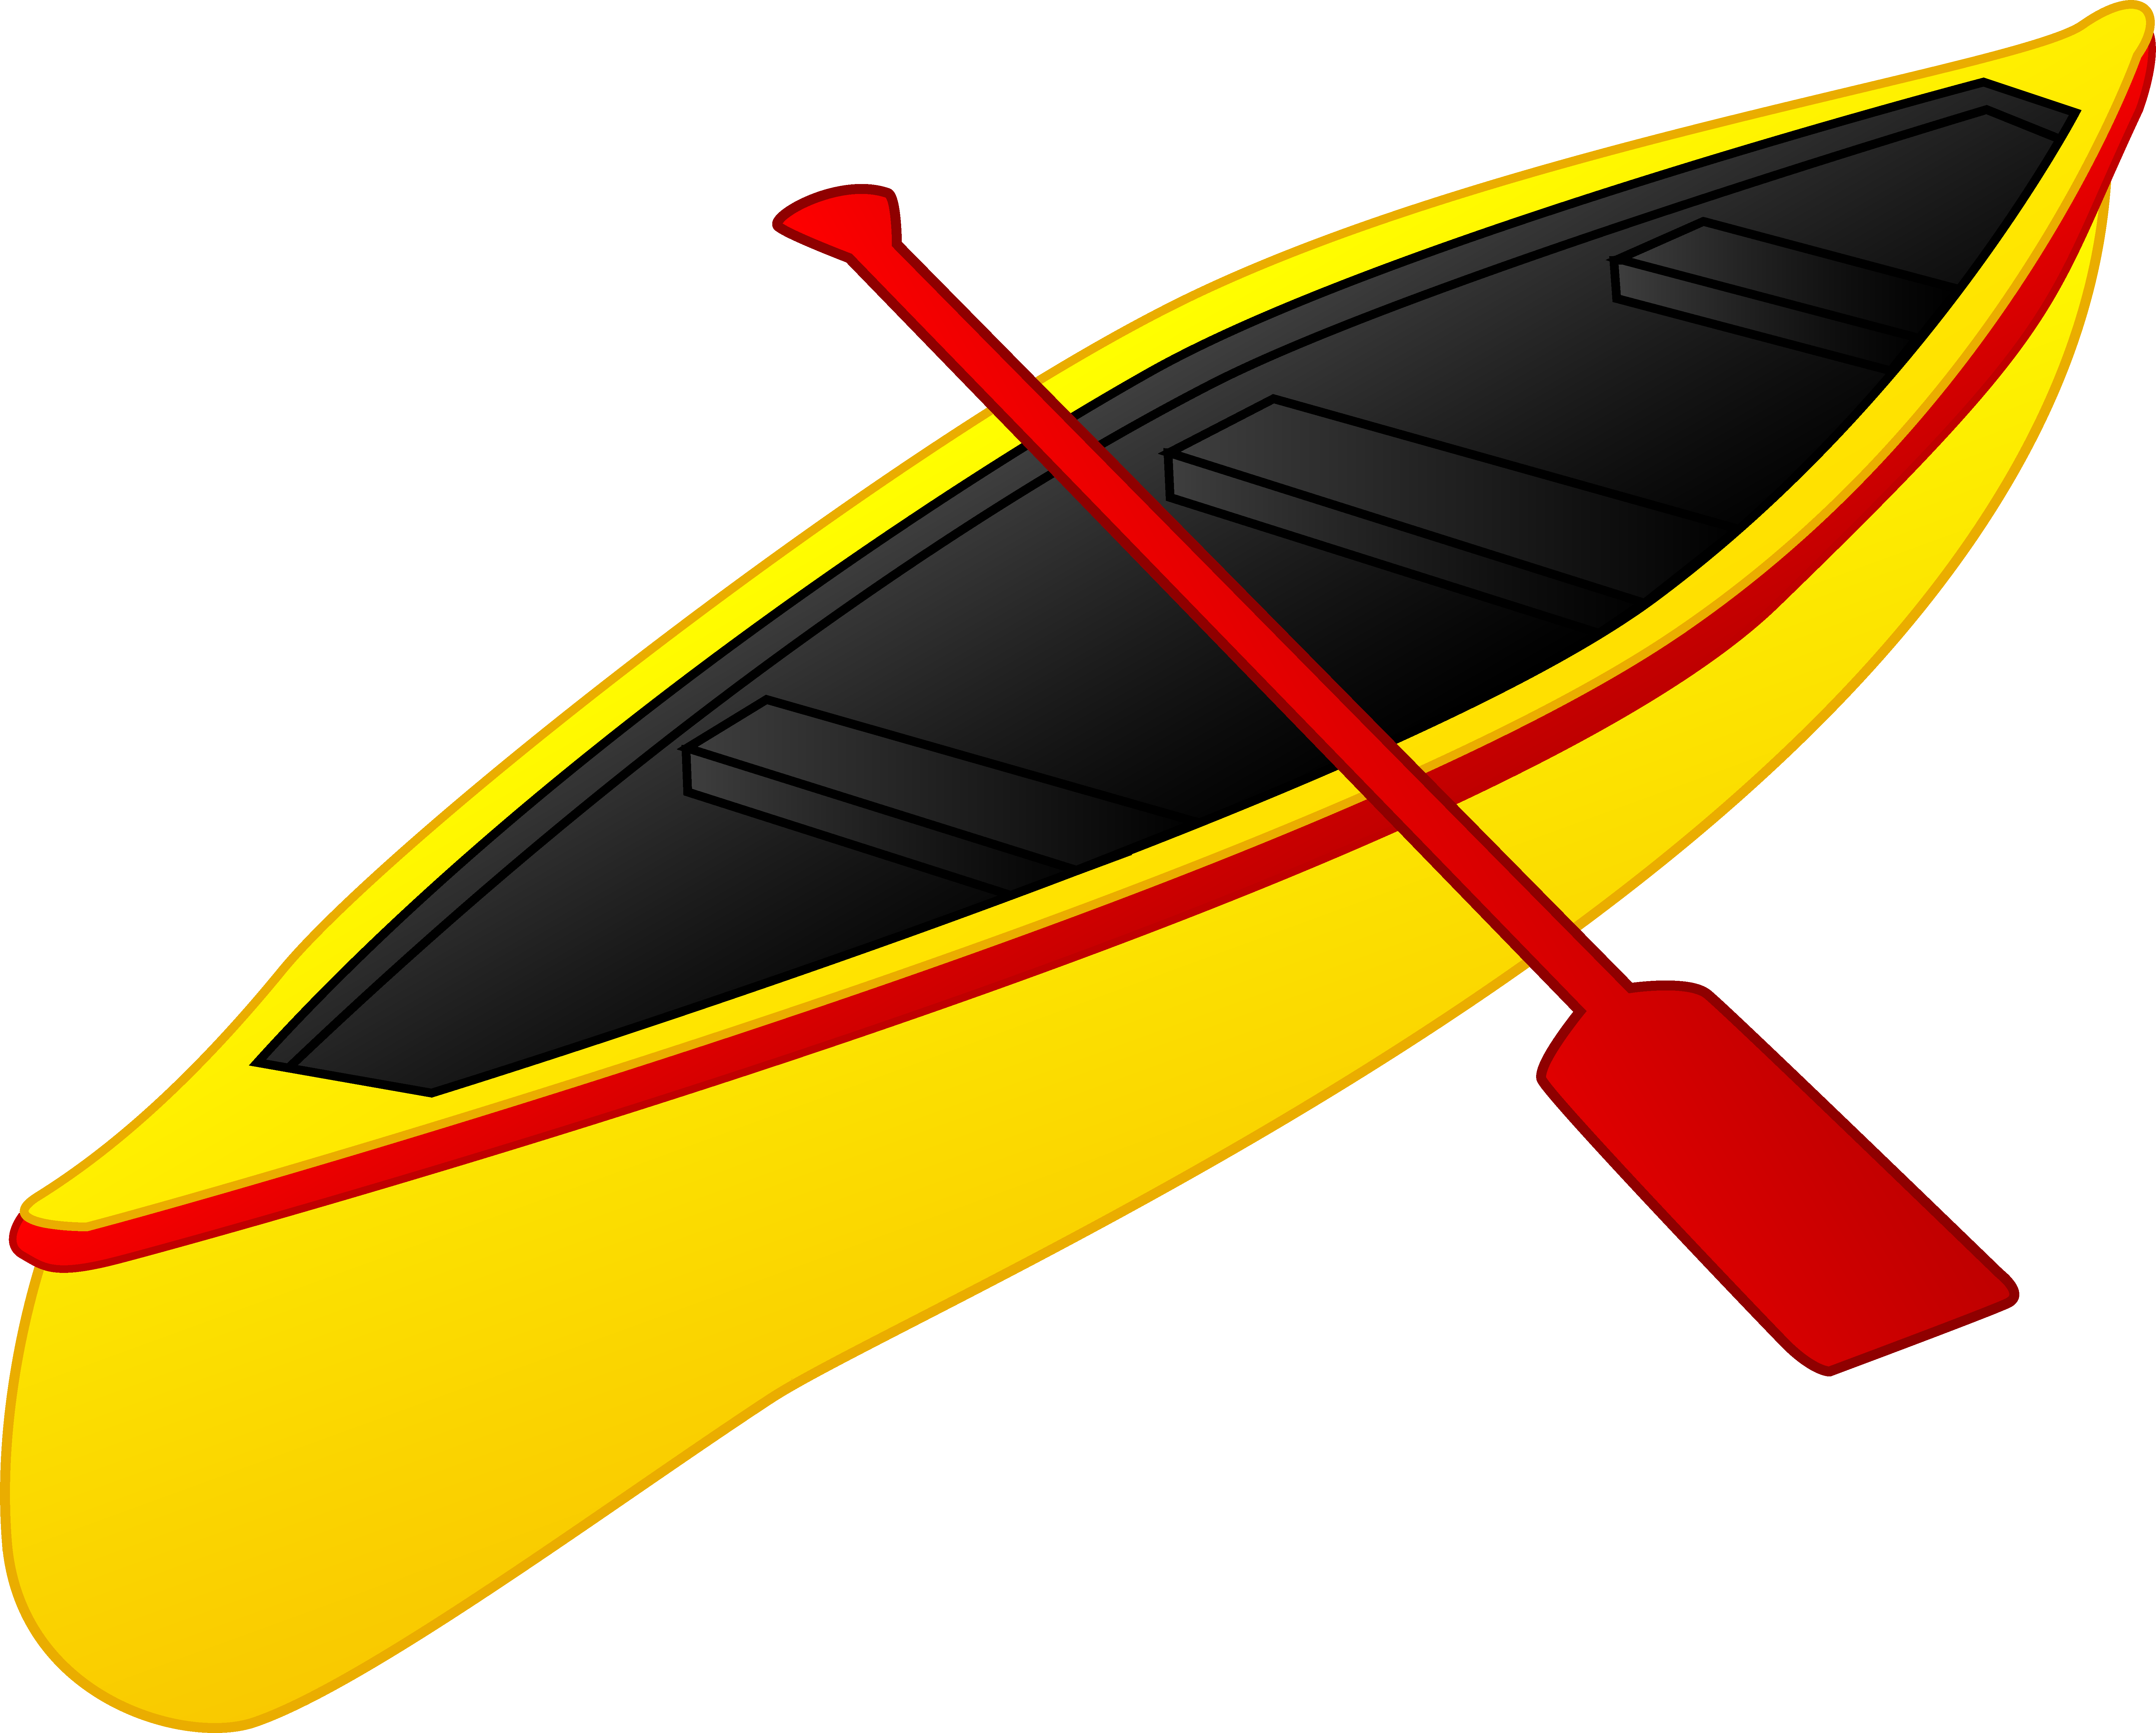 clipart of a kayak - photo #1